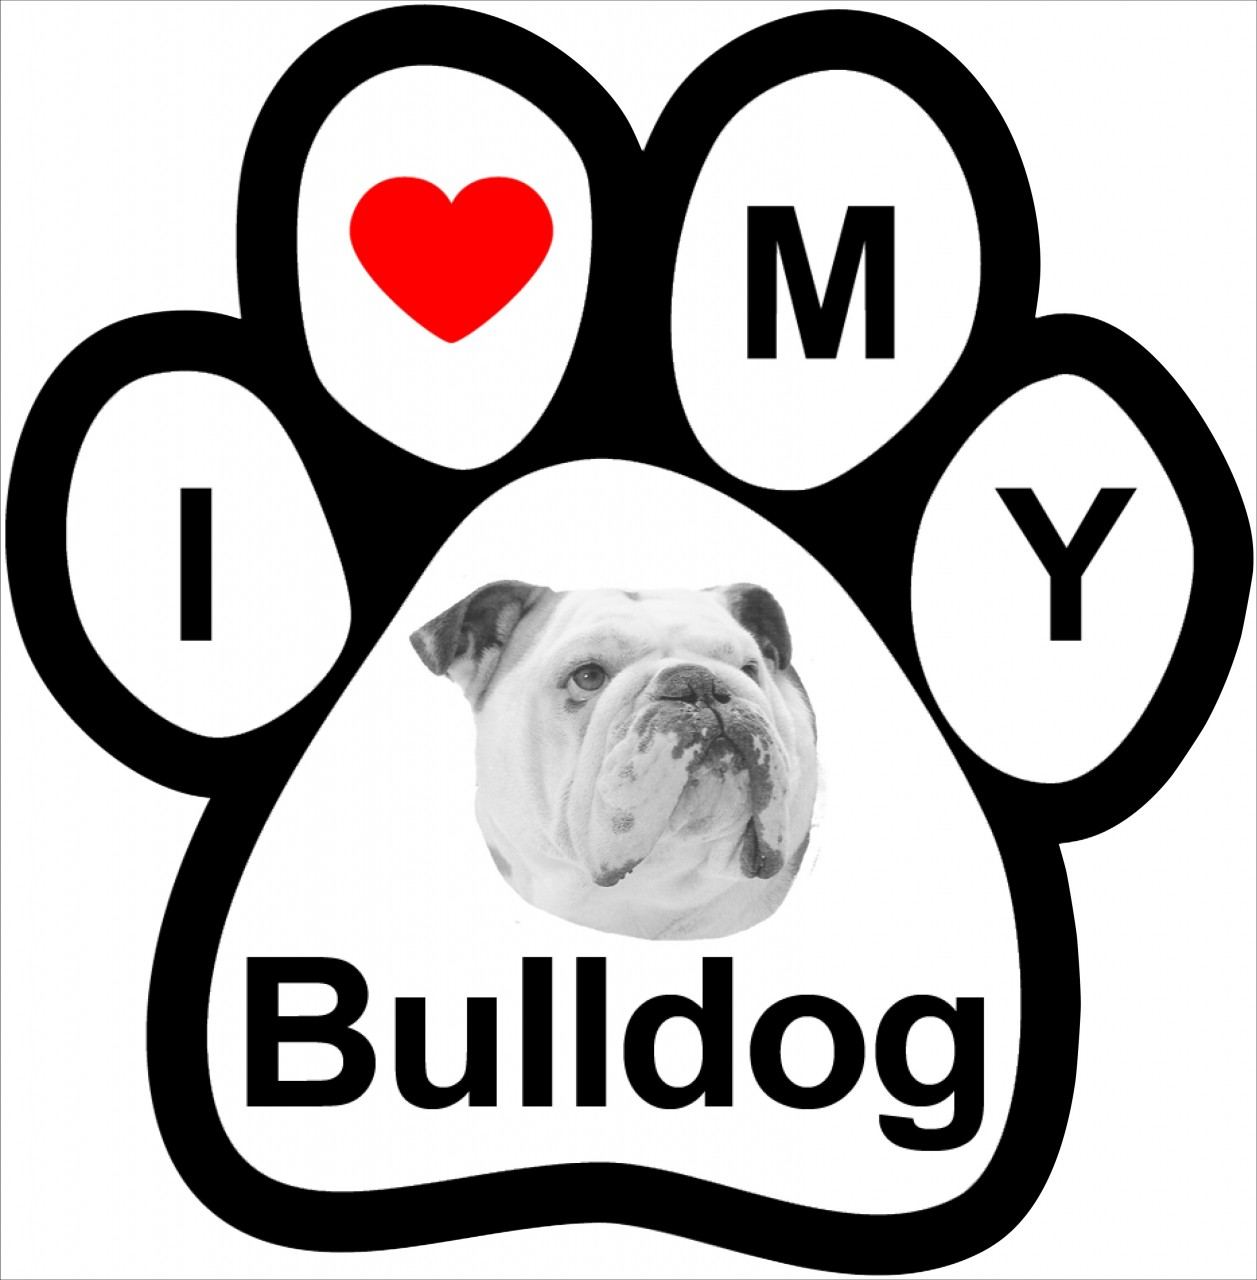 Bulldog Paw Prints   Free Cliparts That You Can Download To You